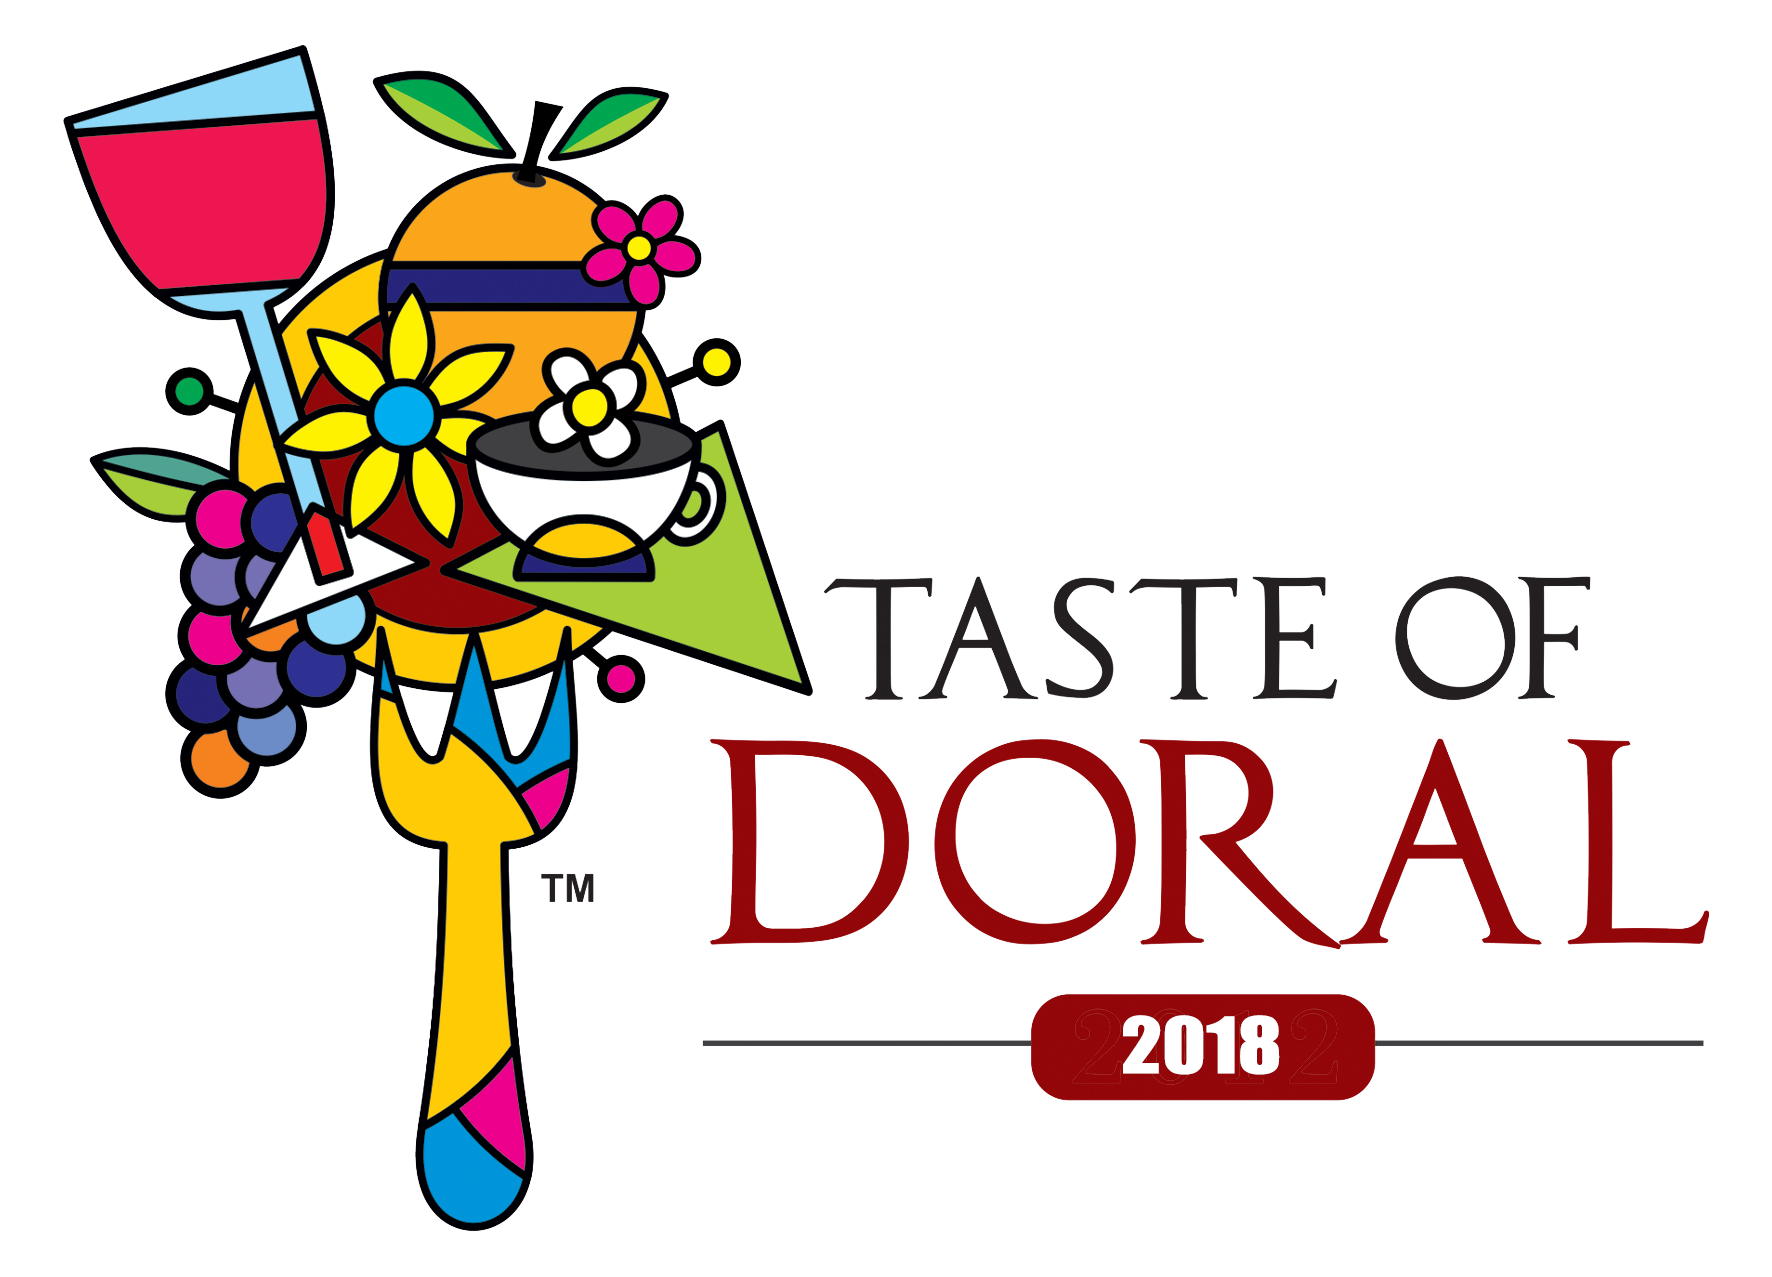 A Taste of Doral 2018, a Doral Chamber of Commerce company.